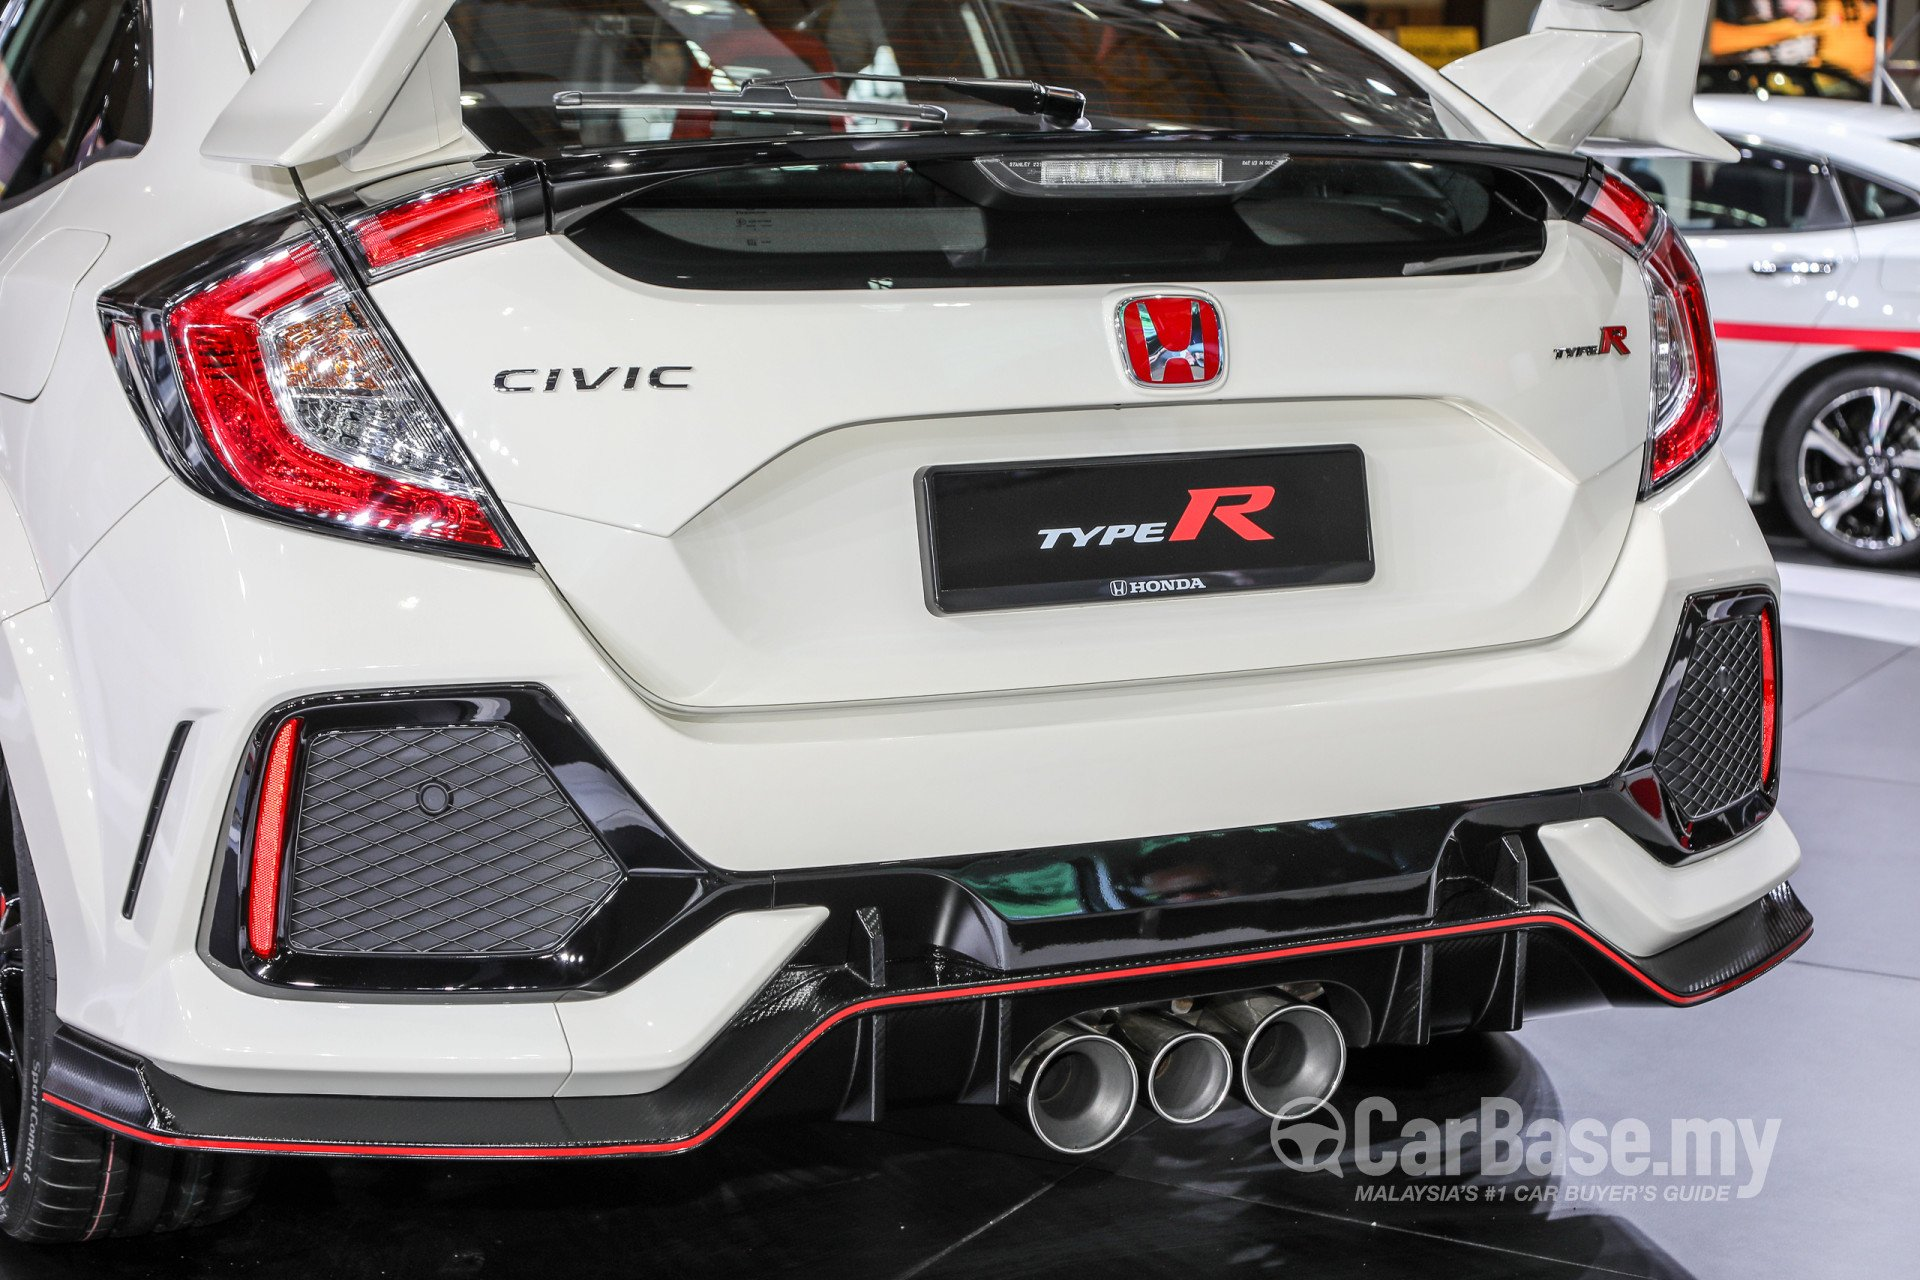 honda civic type r fk8 2017 exterior image 42718 in malaysia reviews specs prices. Black Bedroom Furniture Sets. Home Design Ideas